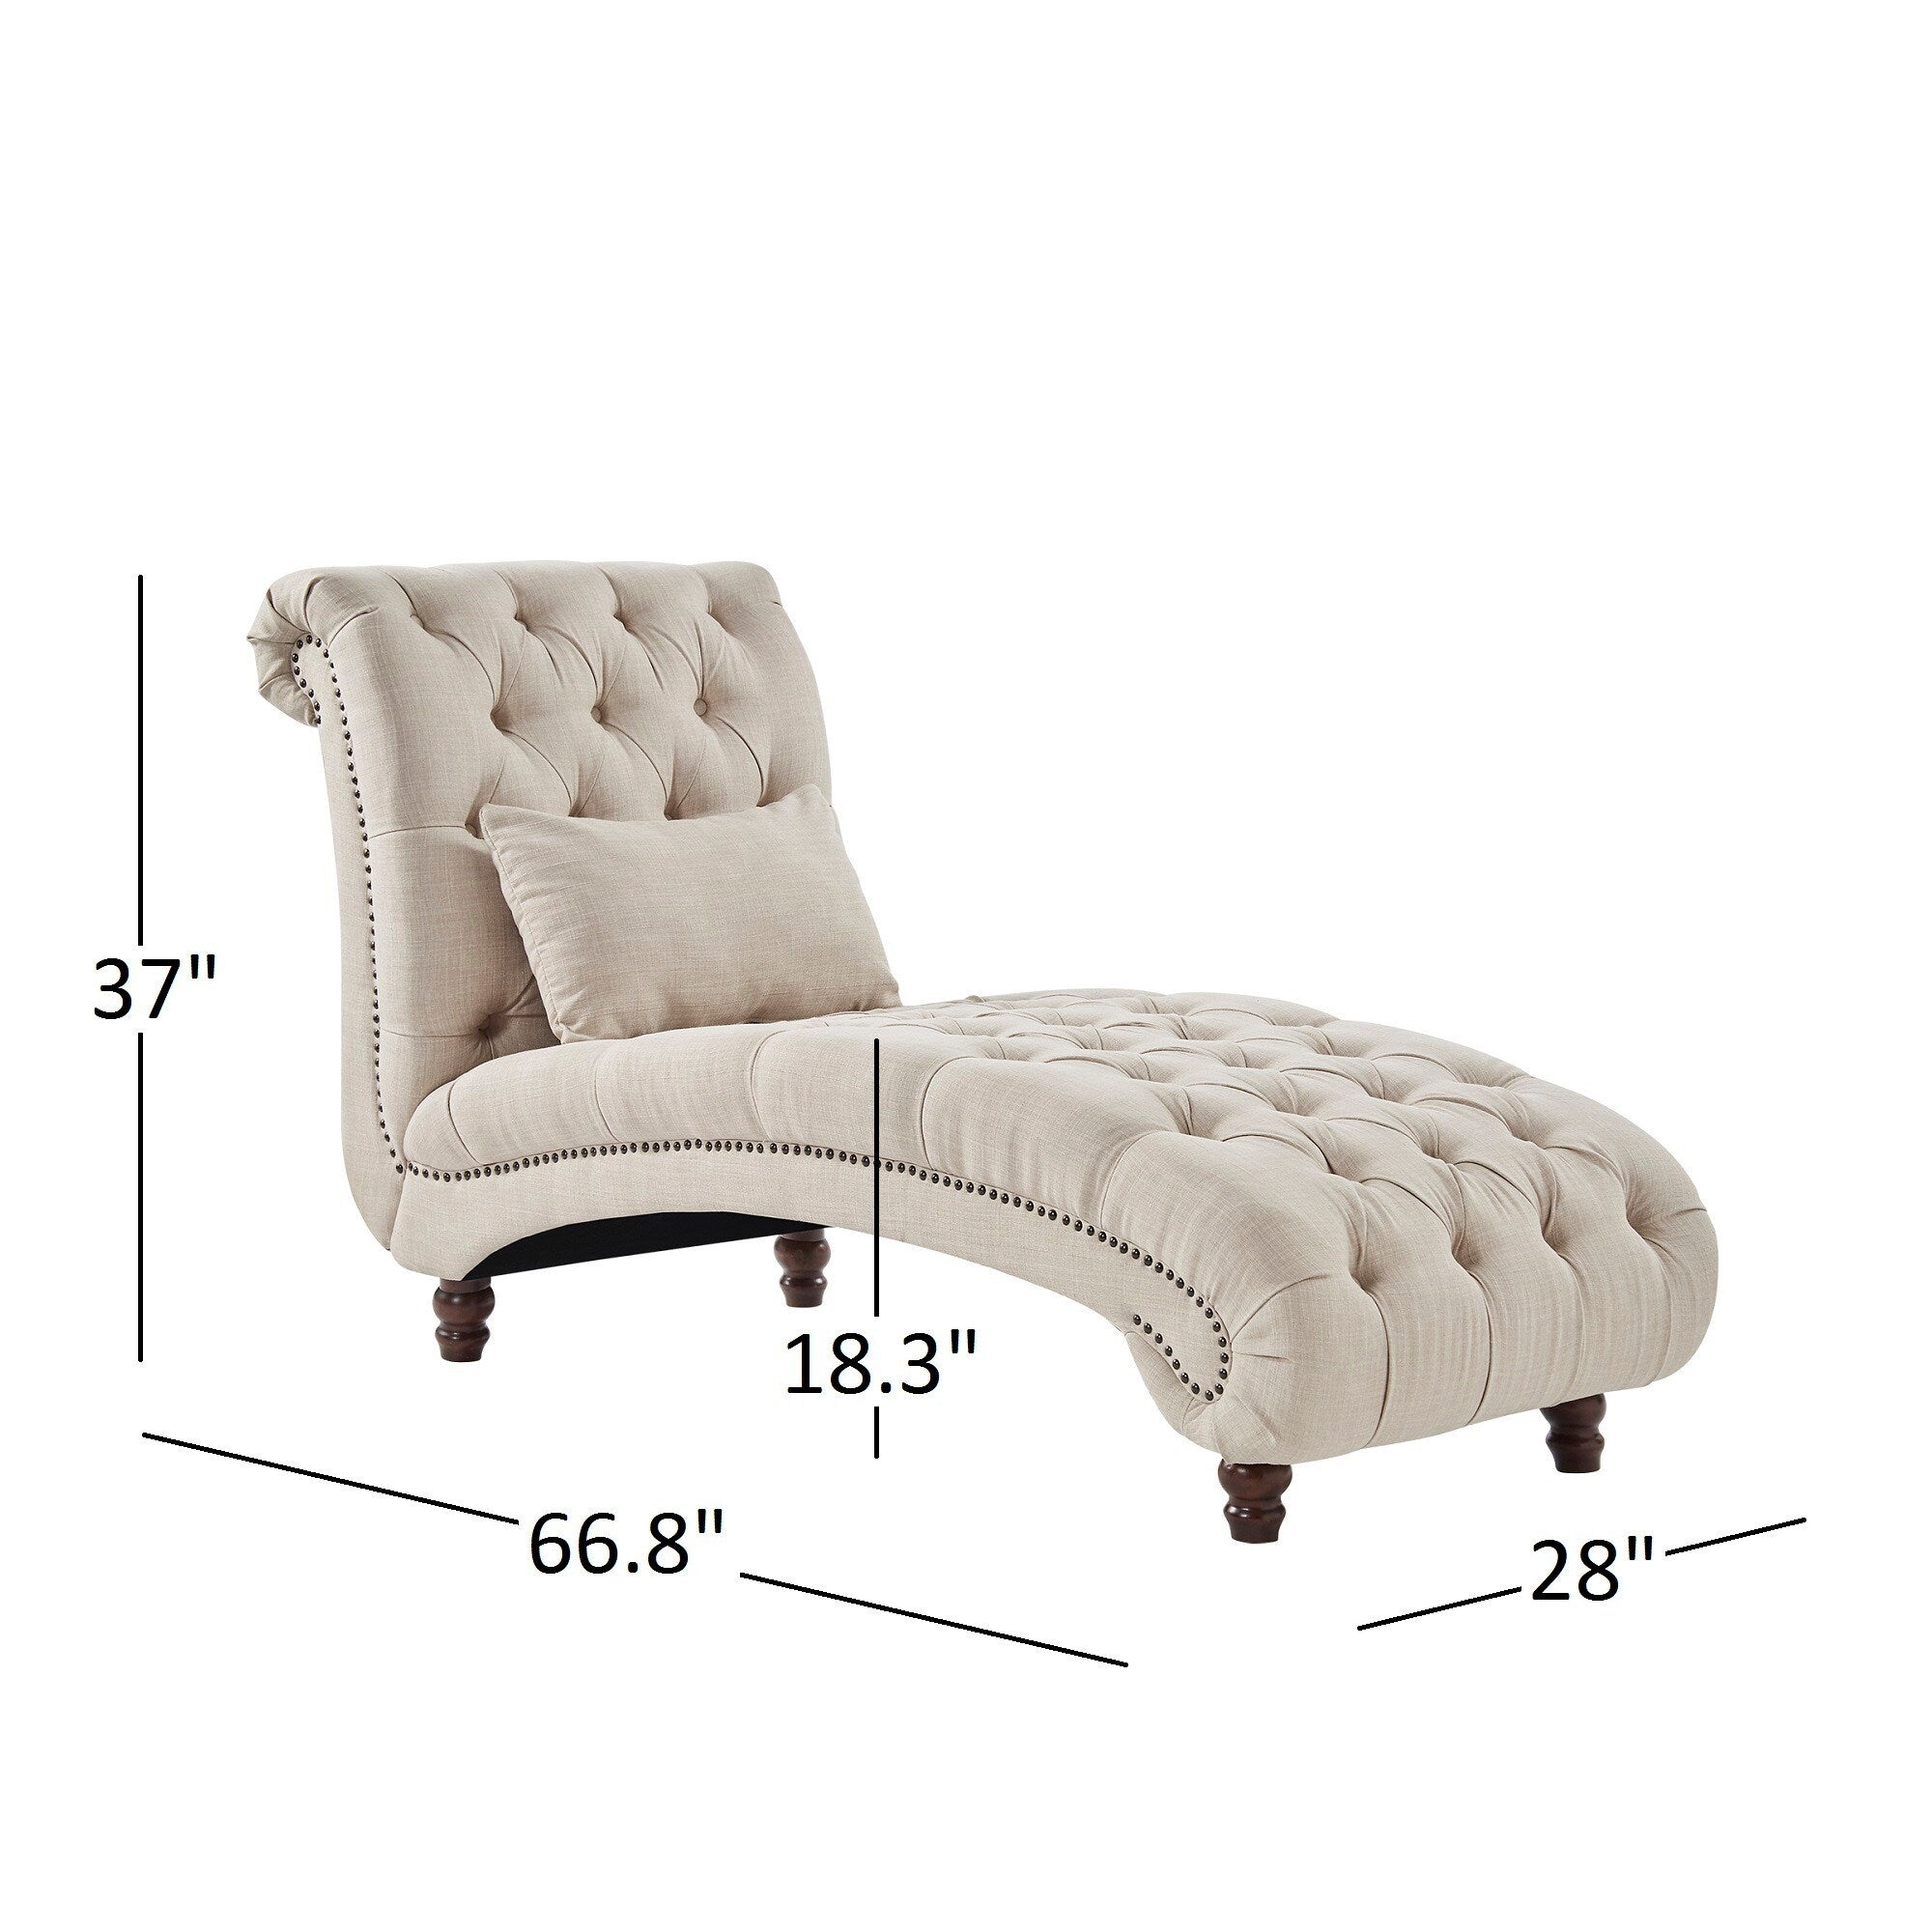 Tufted Oversized Chaise Lounge - Beige Linen